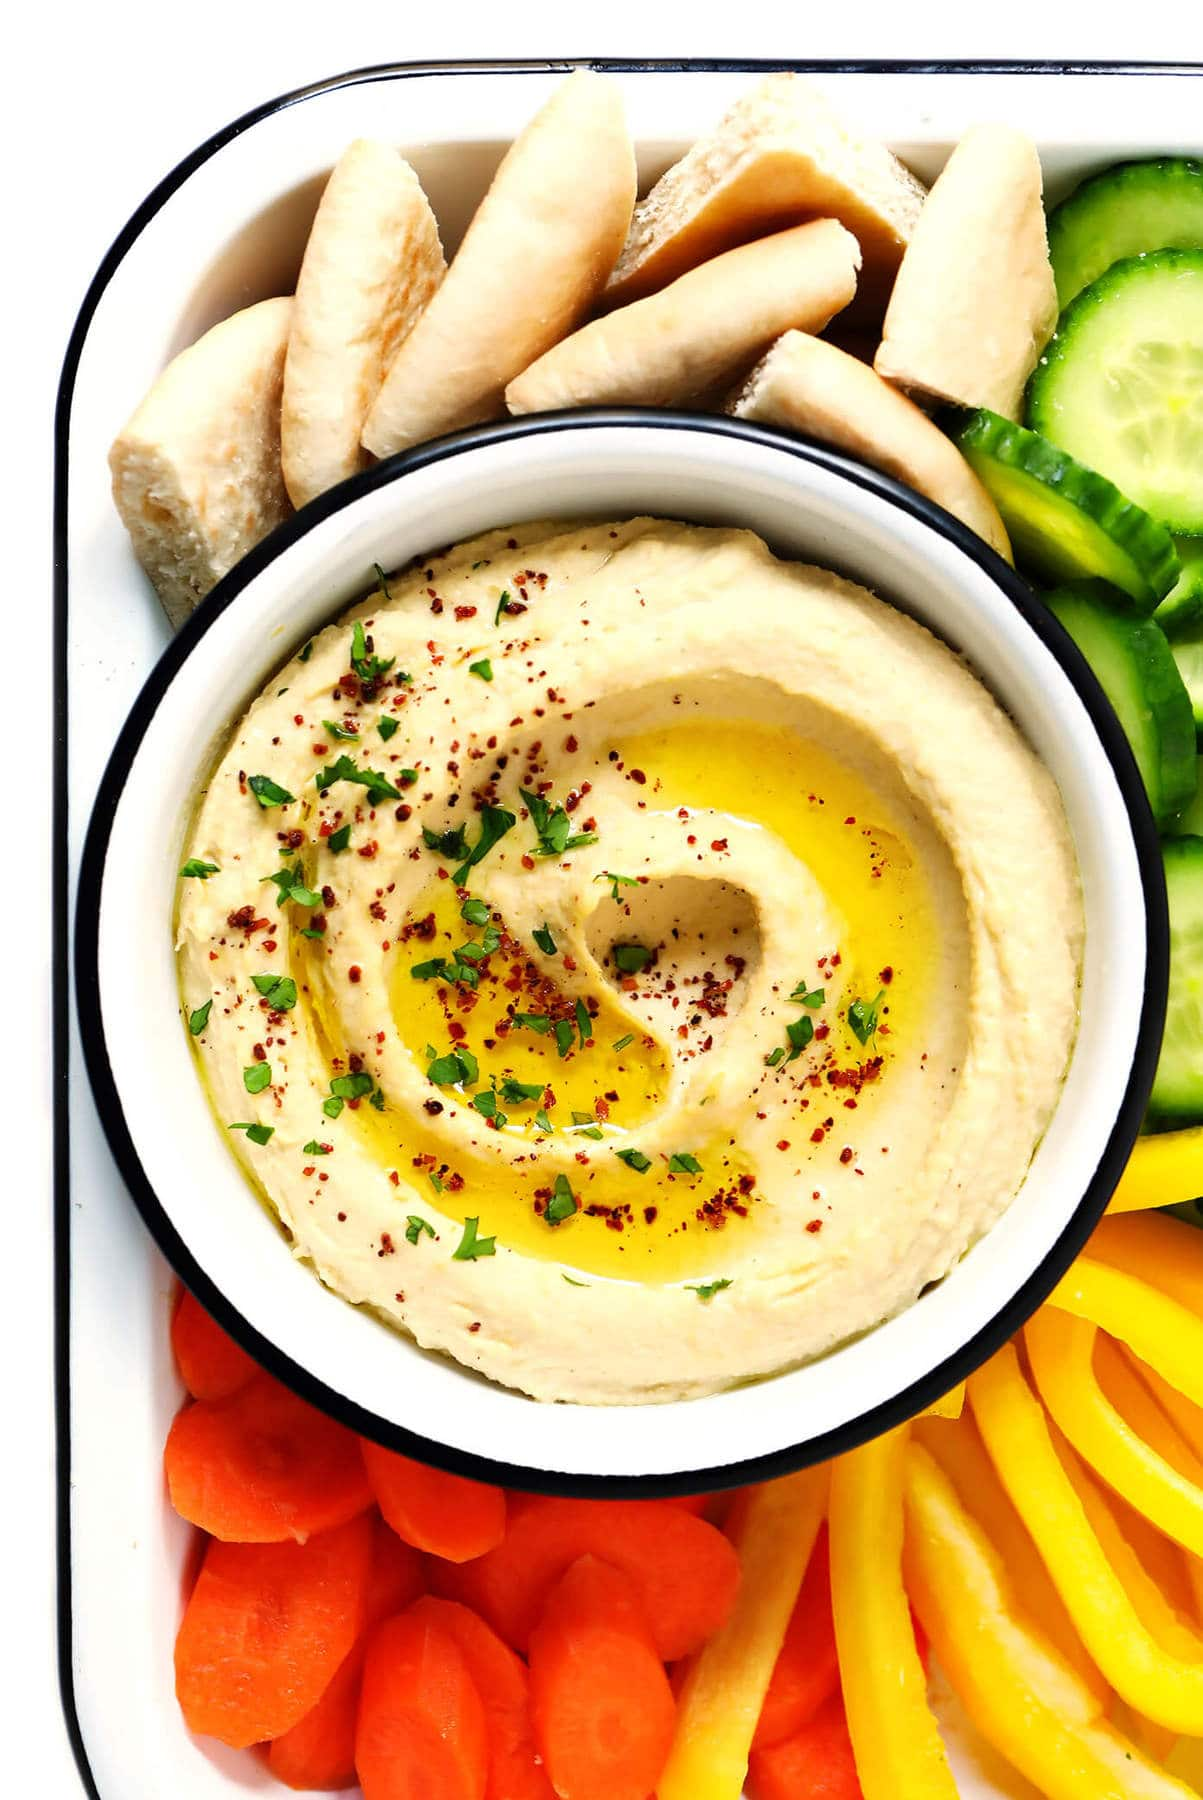 Hummus in a small bowl with pita and veggies on the side.